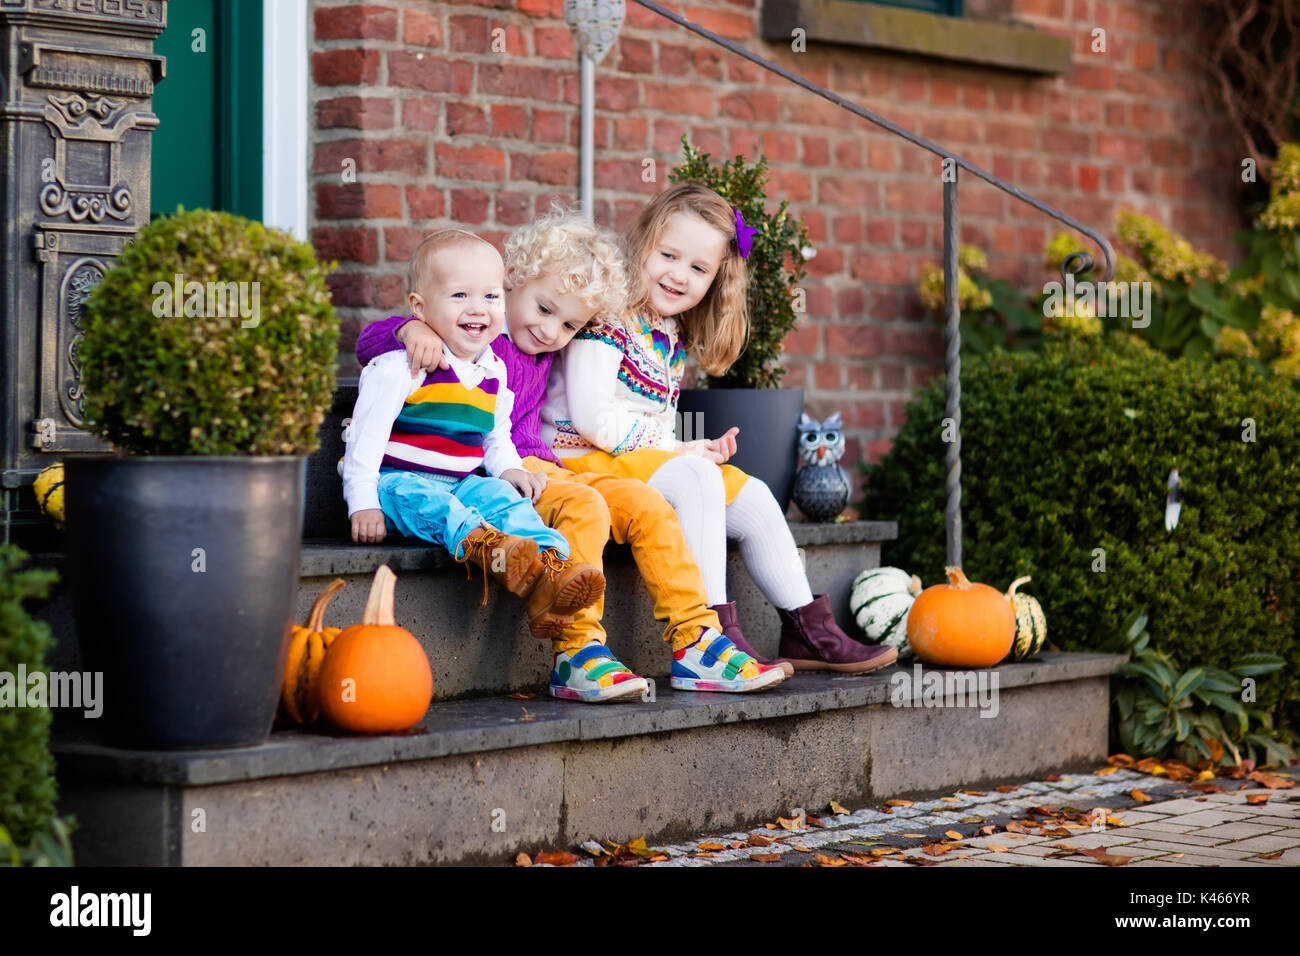 Group of little children sitting on stone stairs to the house door on warm autumn day during Halloween or Thanksgiving time. Kids playing in the front  sc 1 st  Alamy & Group of little children sitting on stone stairs to the house door ...